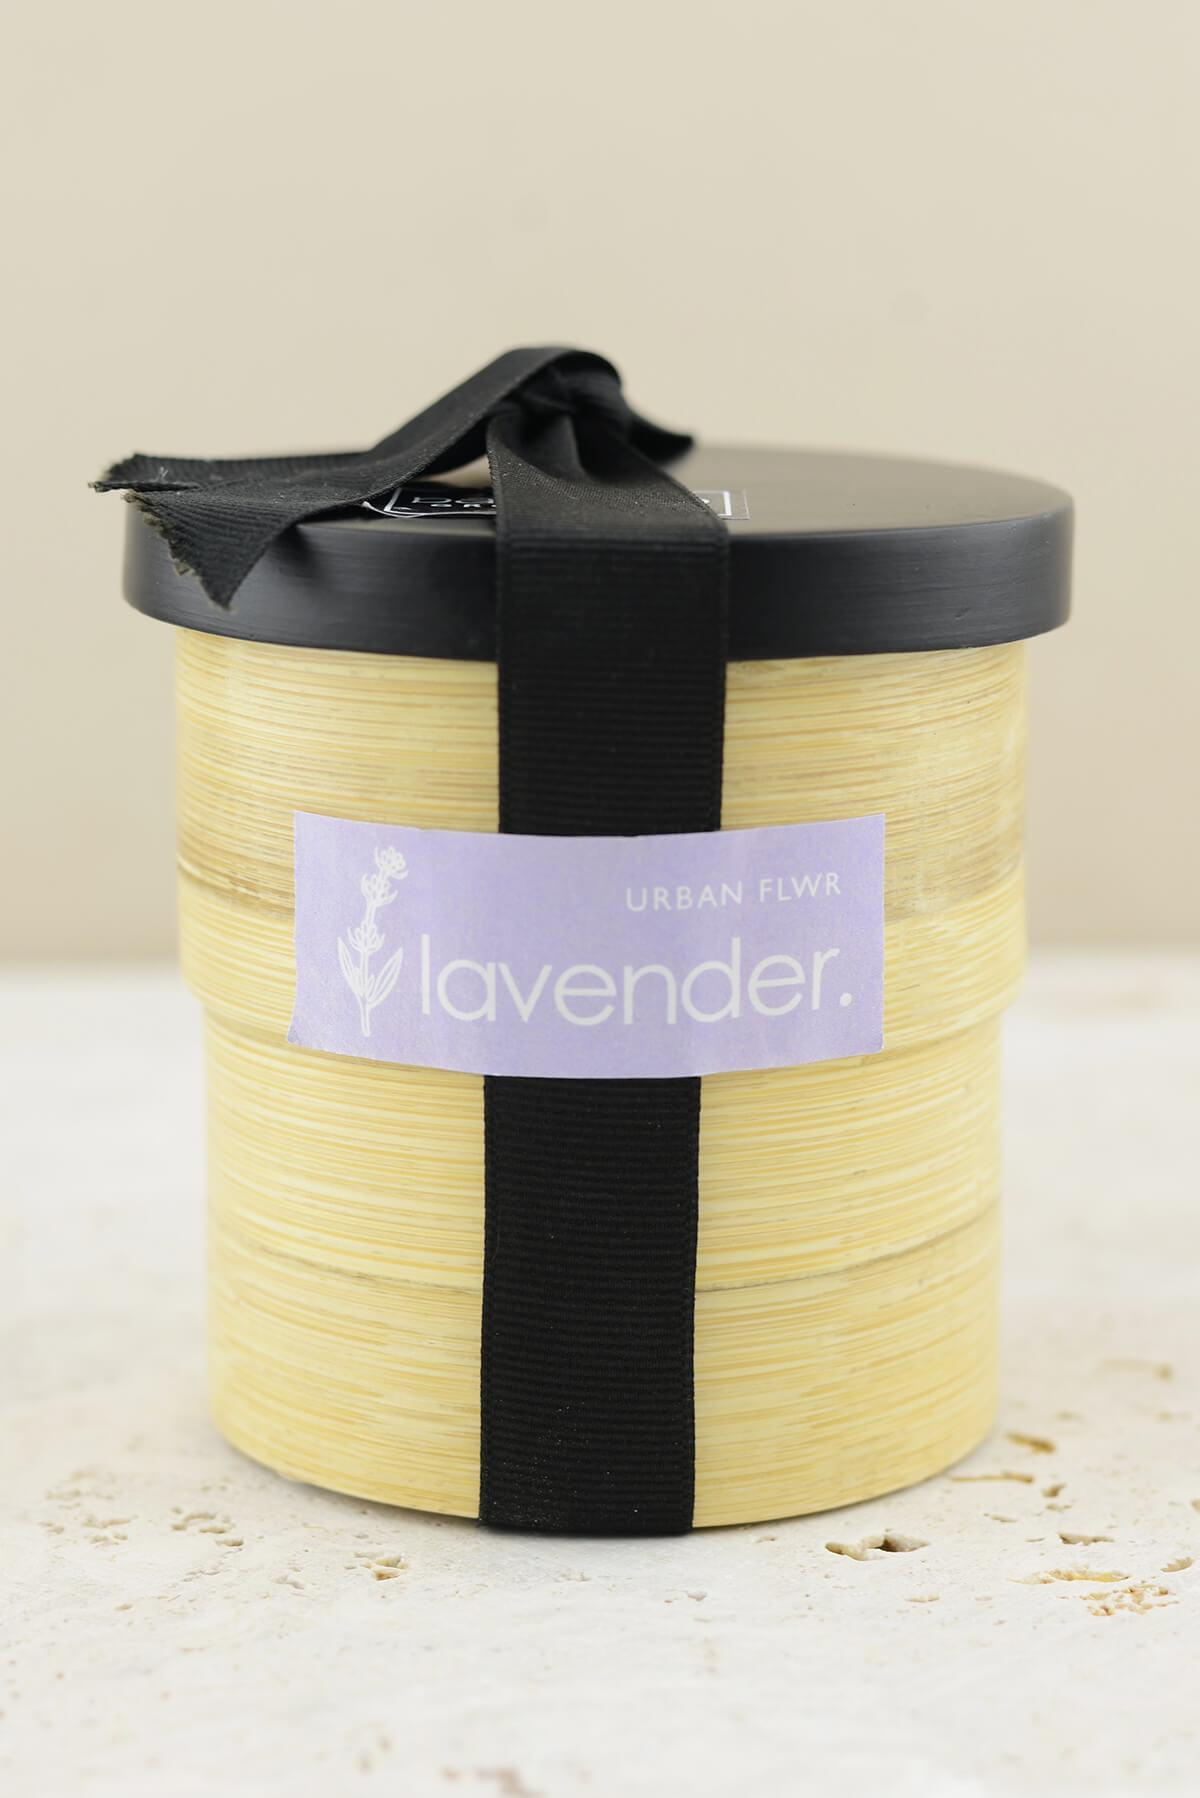 lavender grow kit in bamboo pot